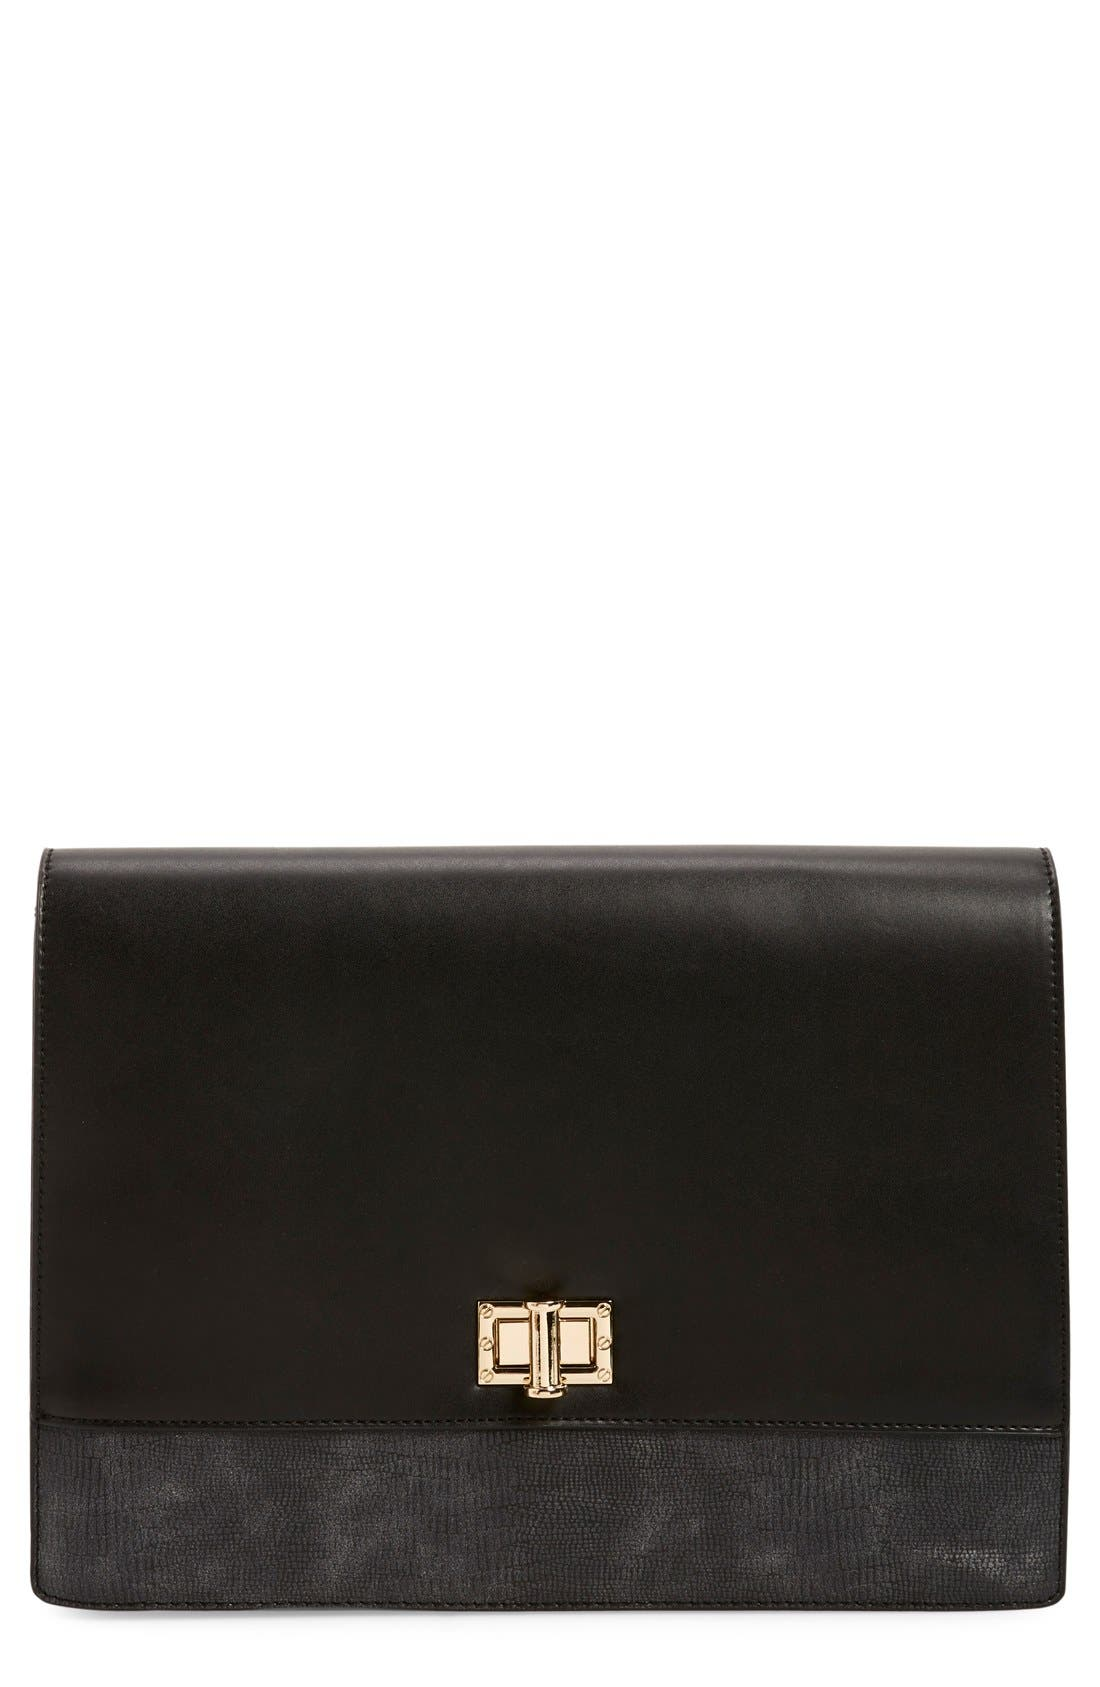 Main Image - Sole Society 'Exotic' Boxy Flap Clutch